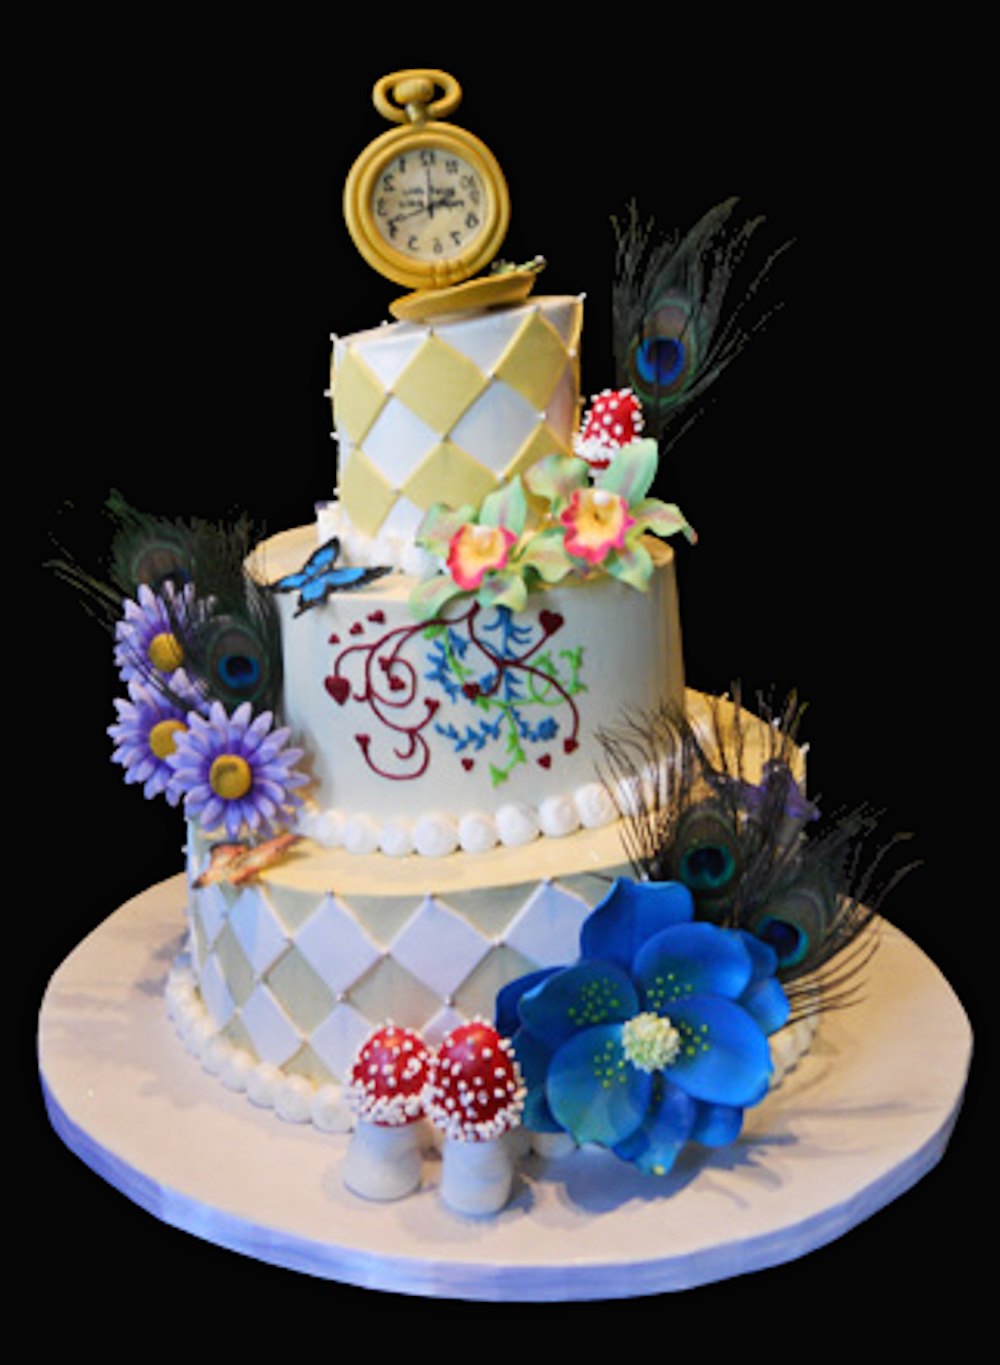 Birthday Cake For Women Wedding Cakes Lehigh Valley Specialty Cakes Piece A Cake